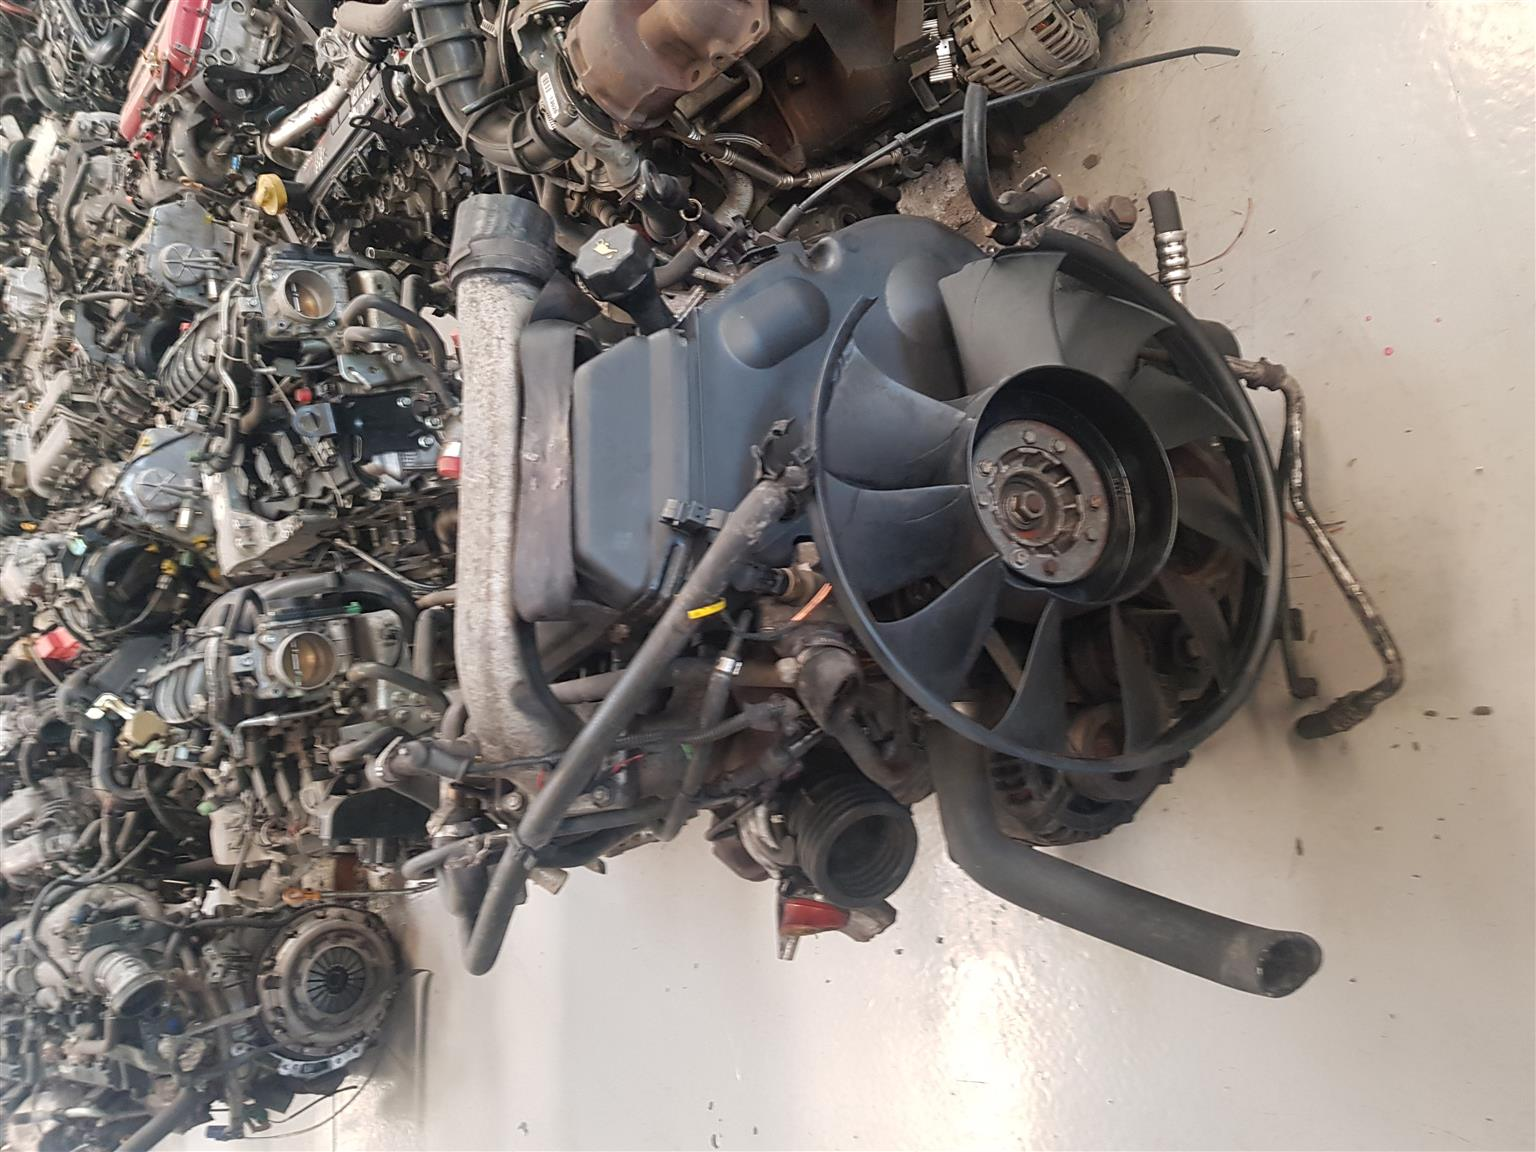 IVECO 8140 2.8 TURBO DIESEL ENGINE FOR SALE